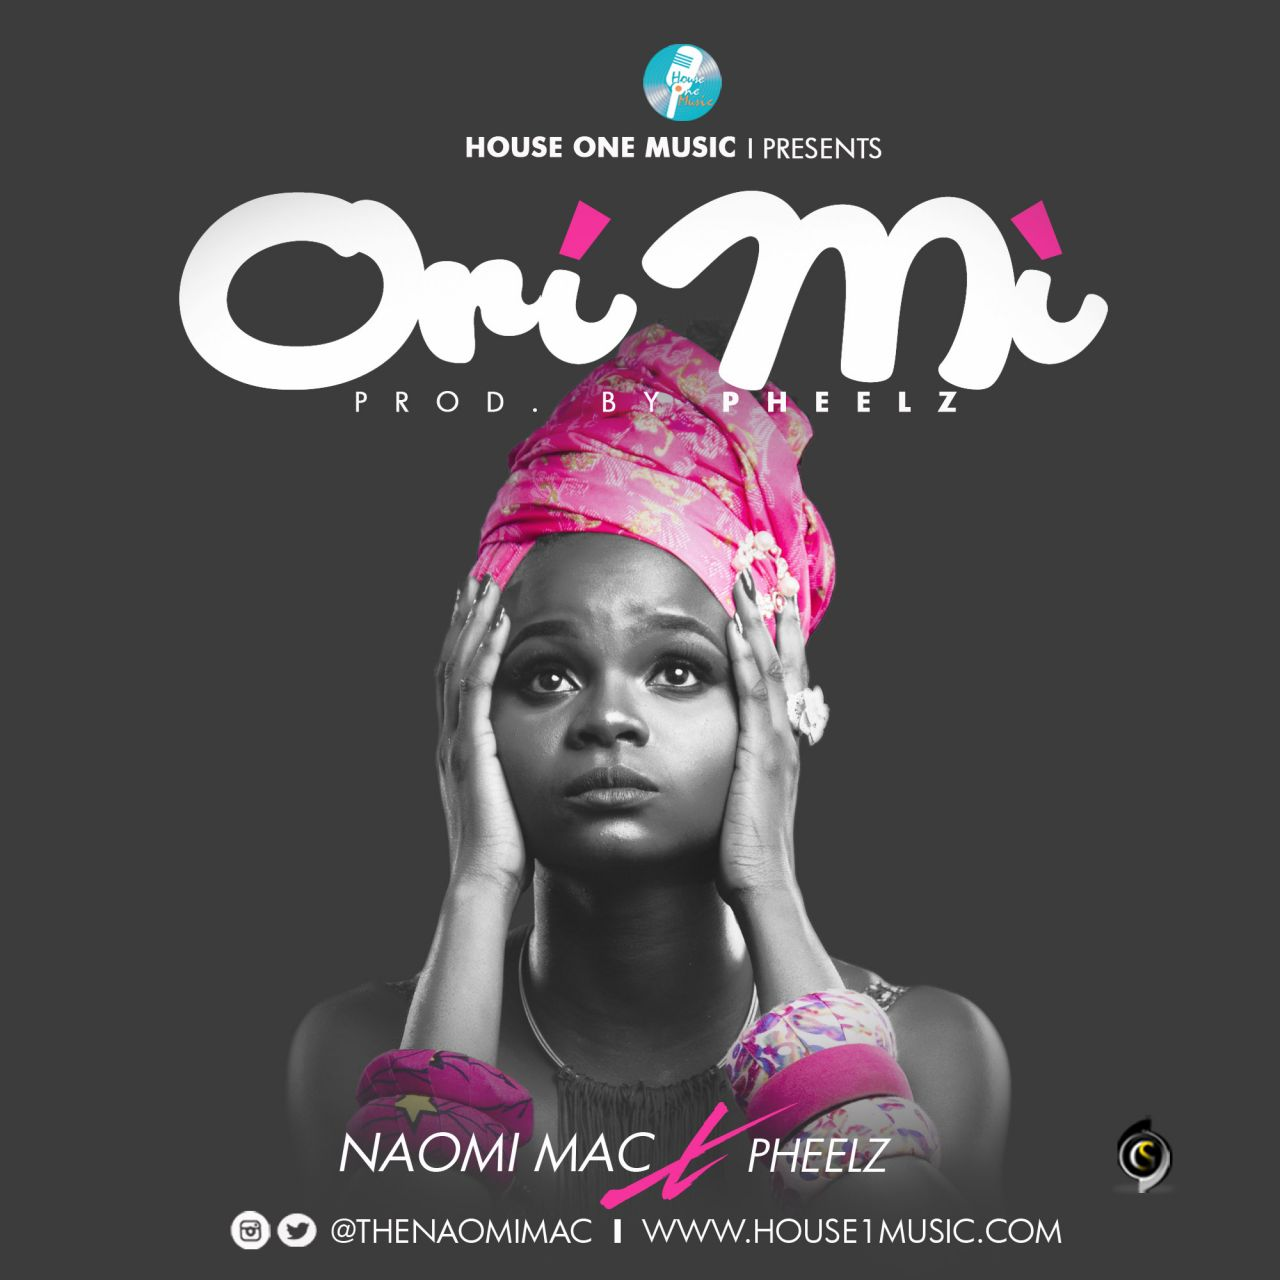 DOWNLOAD AUDIO:Naomi Mac - Orimi Mi ft Pheelz (Prod  Pheelz)